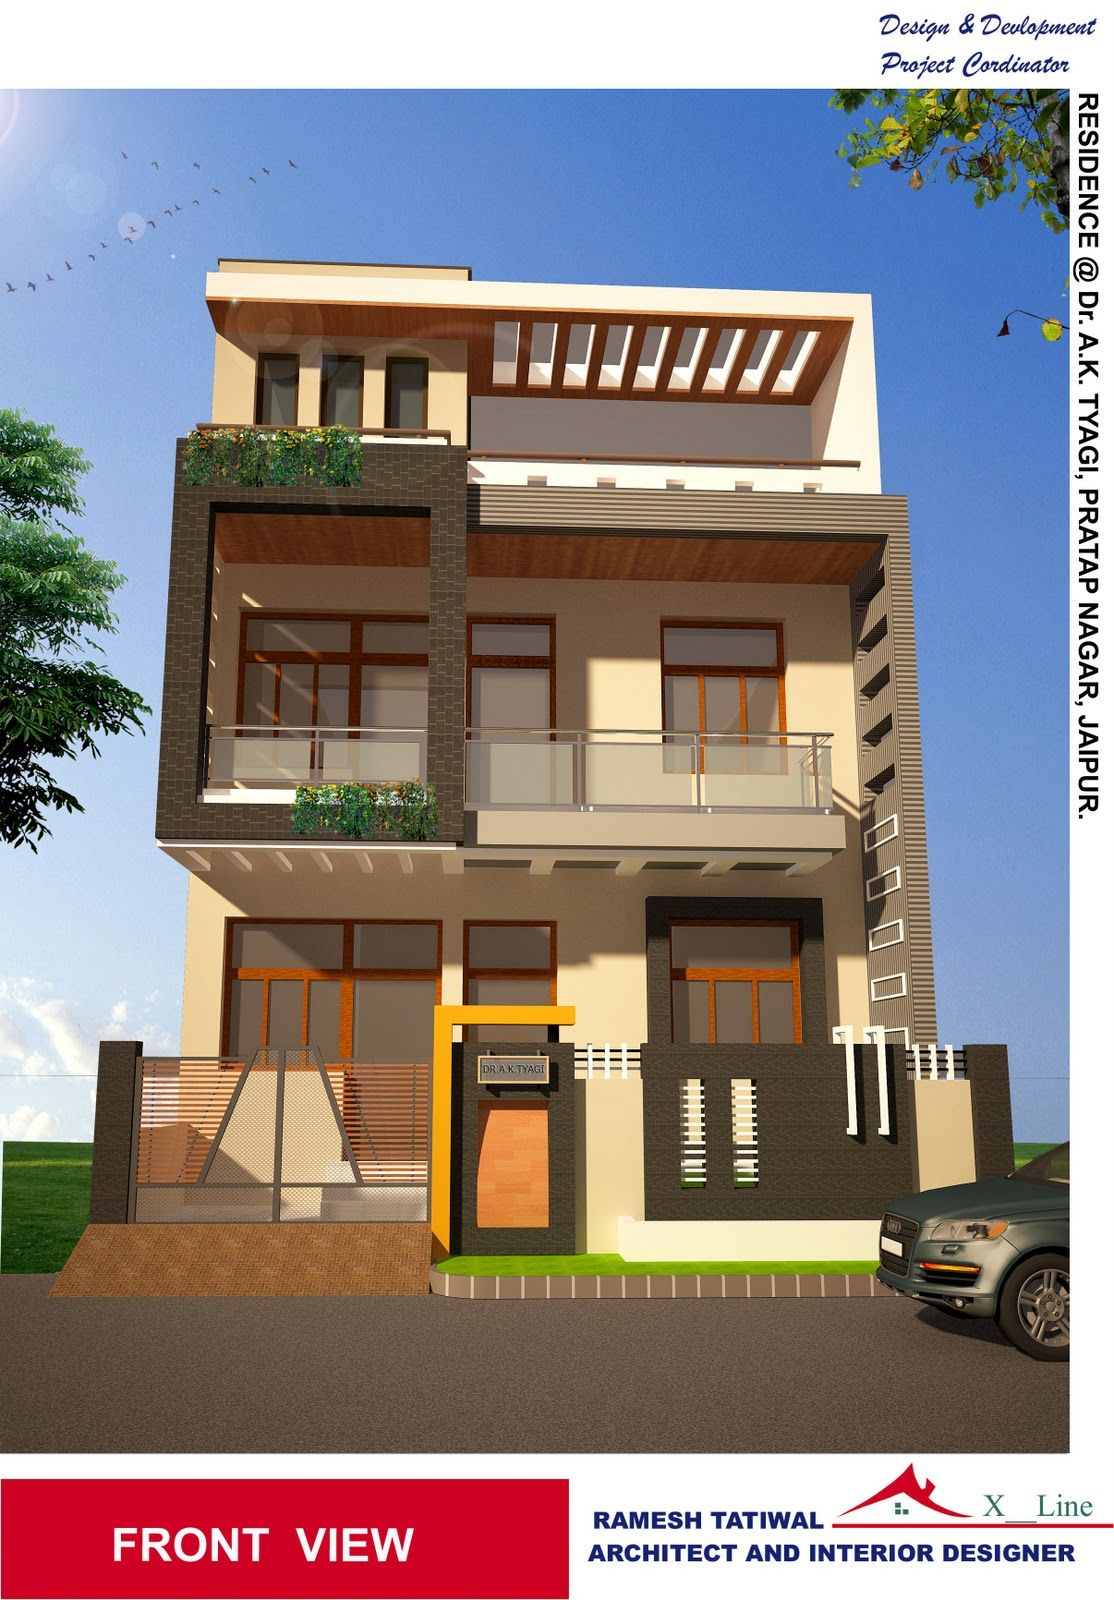 Housedesigns modern indian home architecture design from Indian home exterior design photos